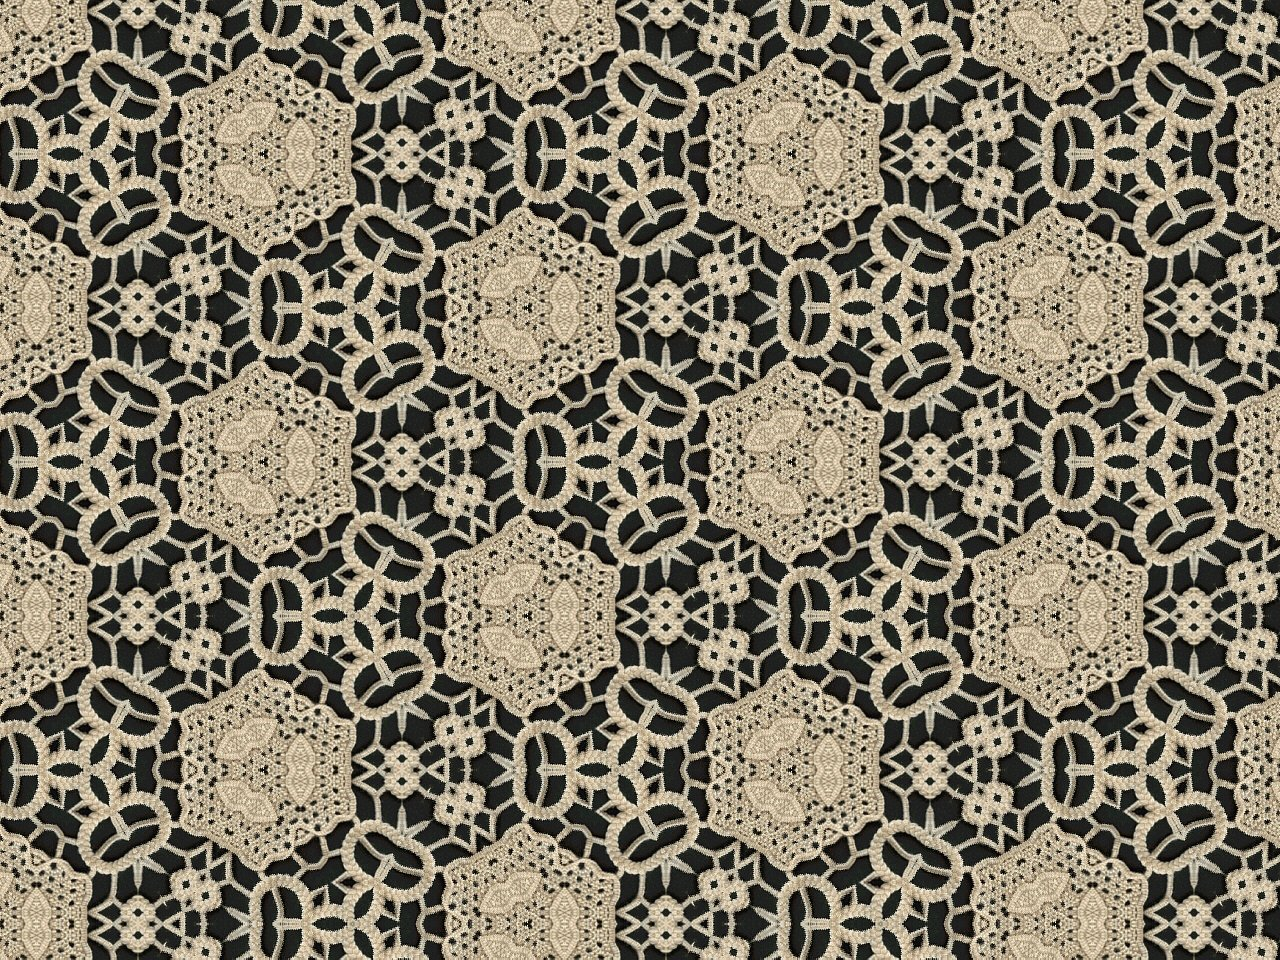 ArtbyJean - Images of Lace: All-over lace fabric ...